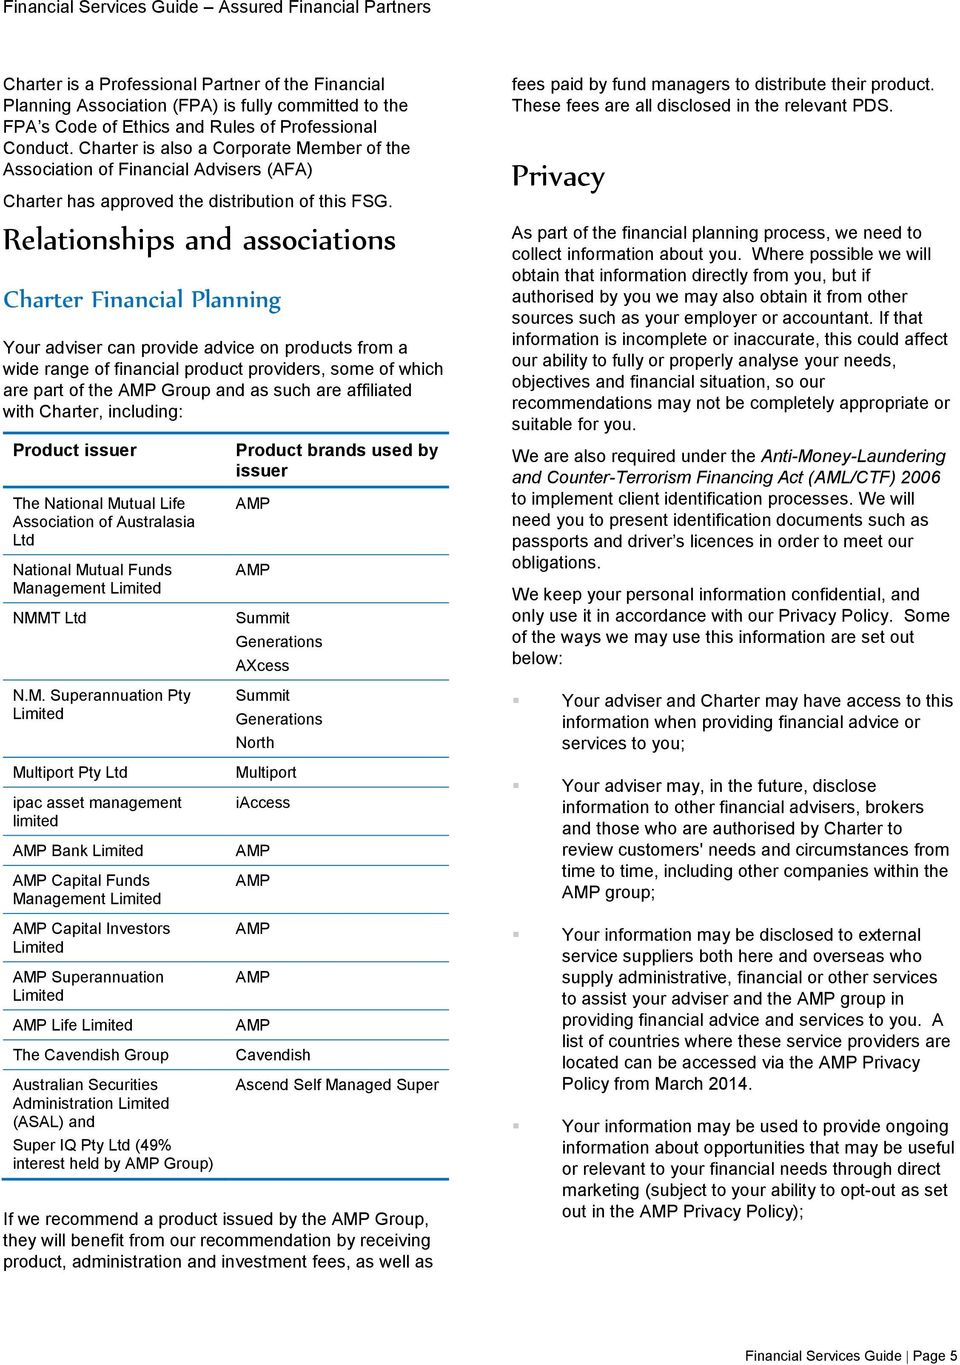 Relationships and associations Charter Financial Planning Your adviser can provide advice on products from a wide range of financial product providers, some of which are part of the Group and as such